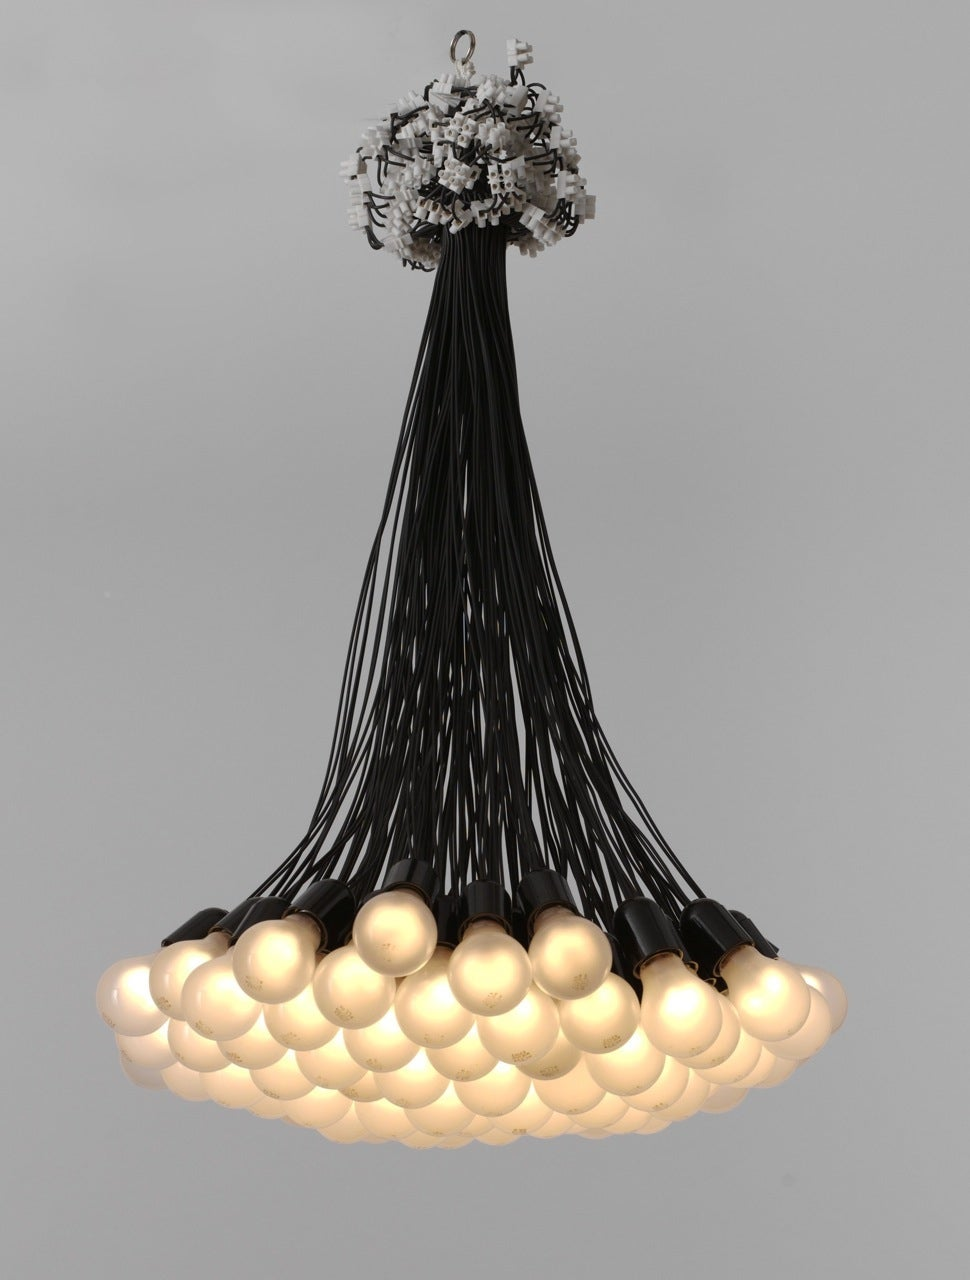 Rody graumans 85 lamps chandelier for droog design at 1stdibs rody graumans 85 lamps chandelier for droog aloadofball Choice Image